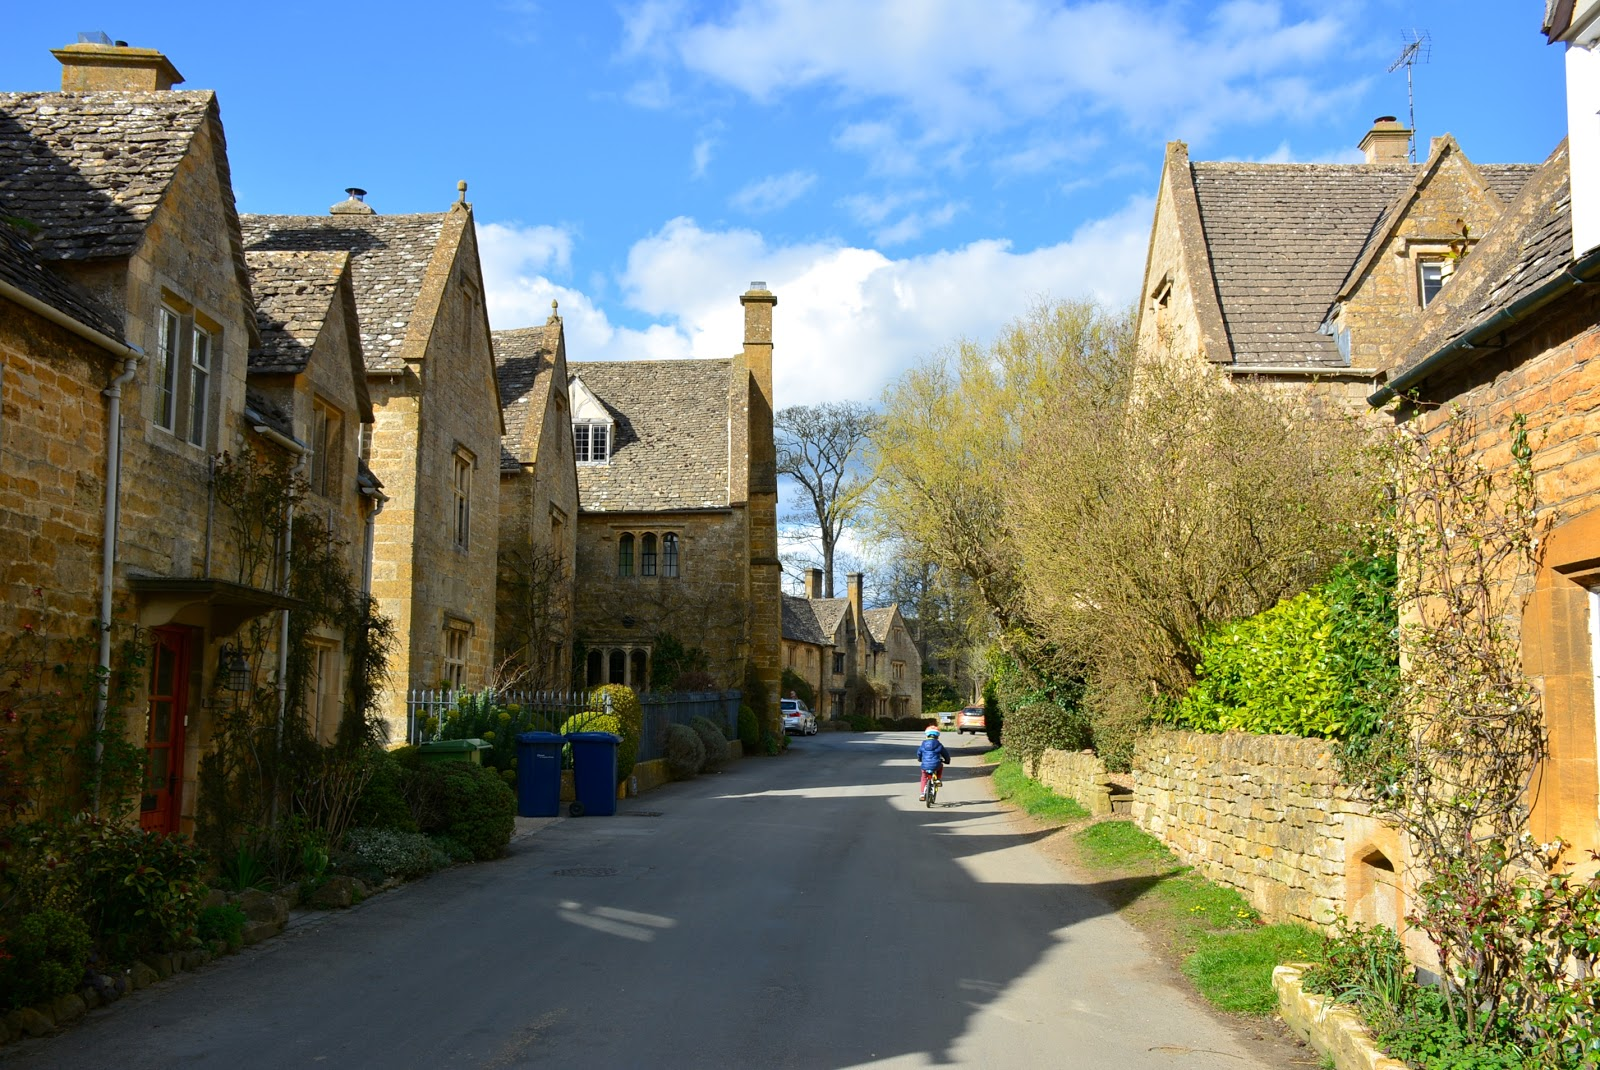 Biking in Stanton, Cotswolds